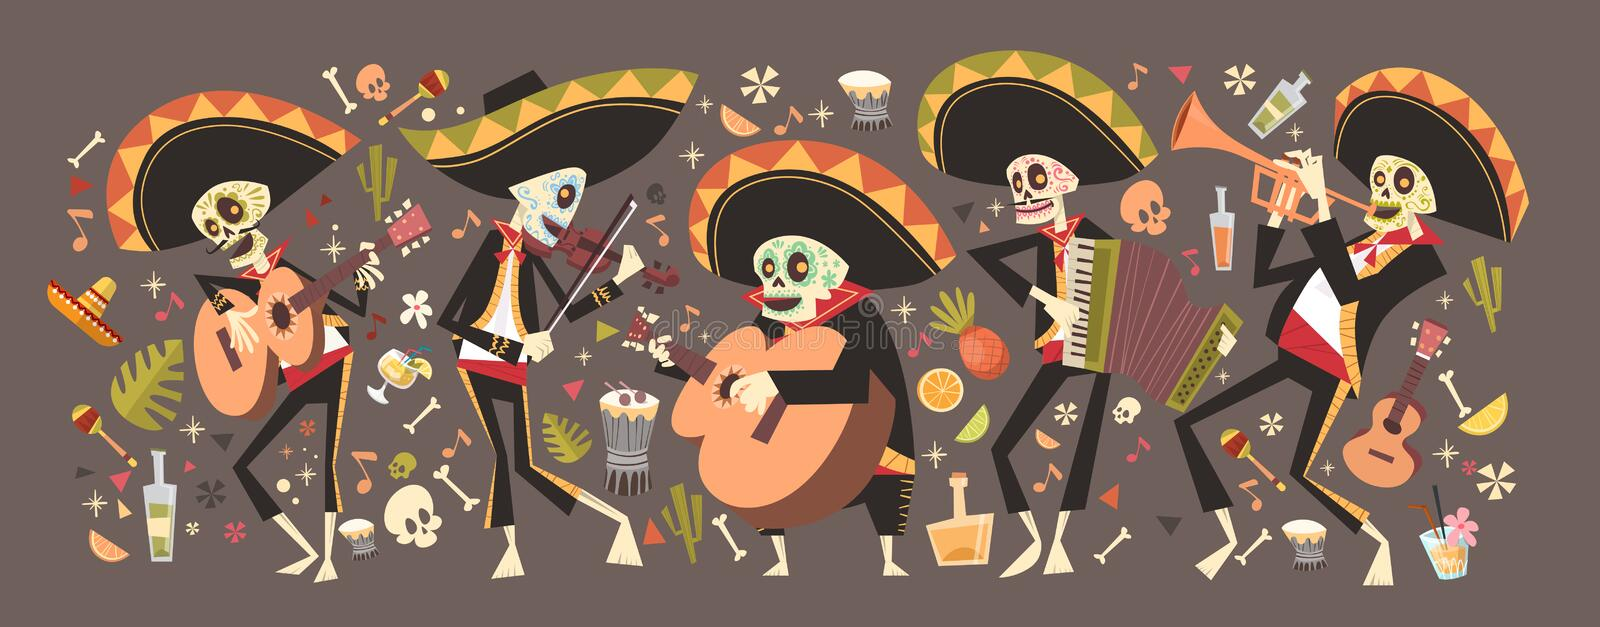 Dag van Dood Traditioneel Mexicaans Halloween Dia De Los Muertos Holiday stock illustratie